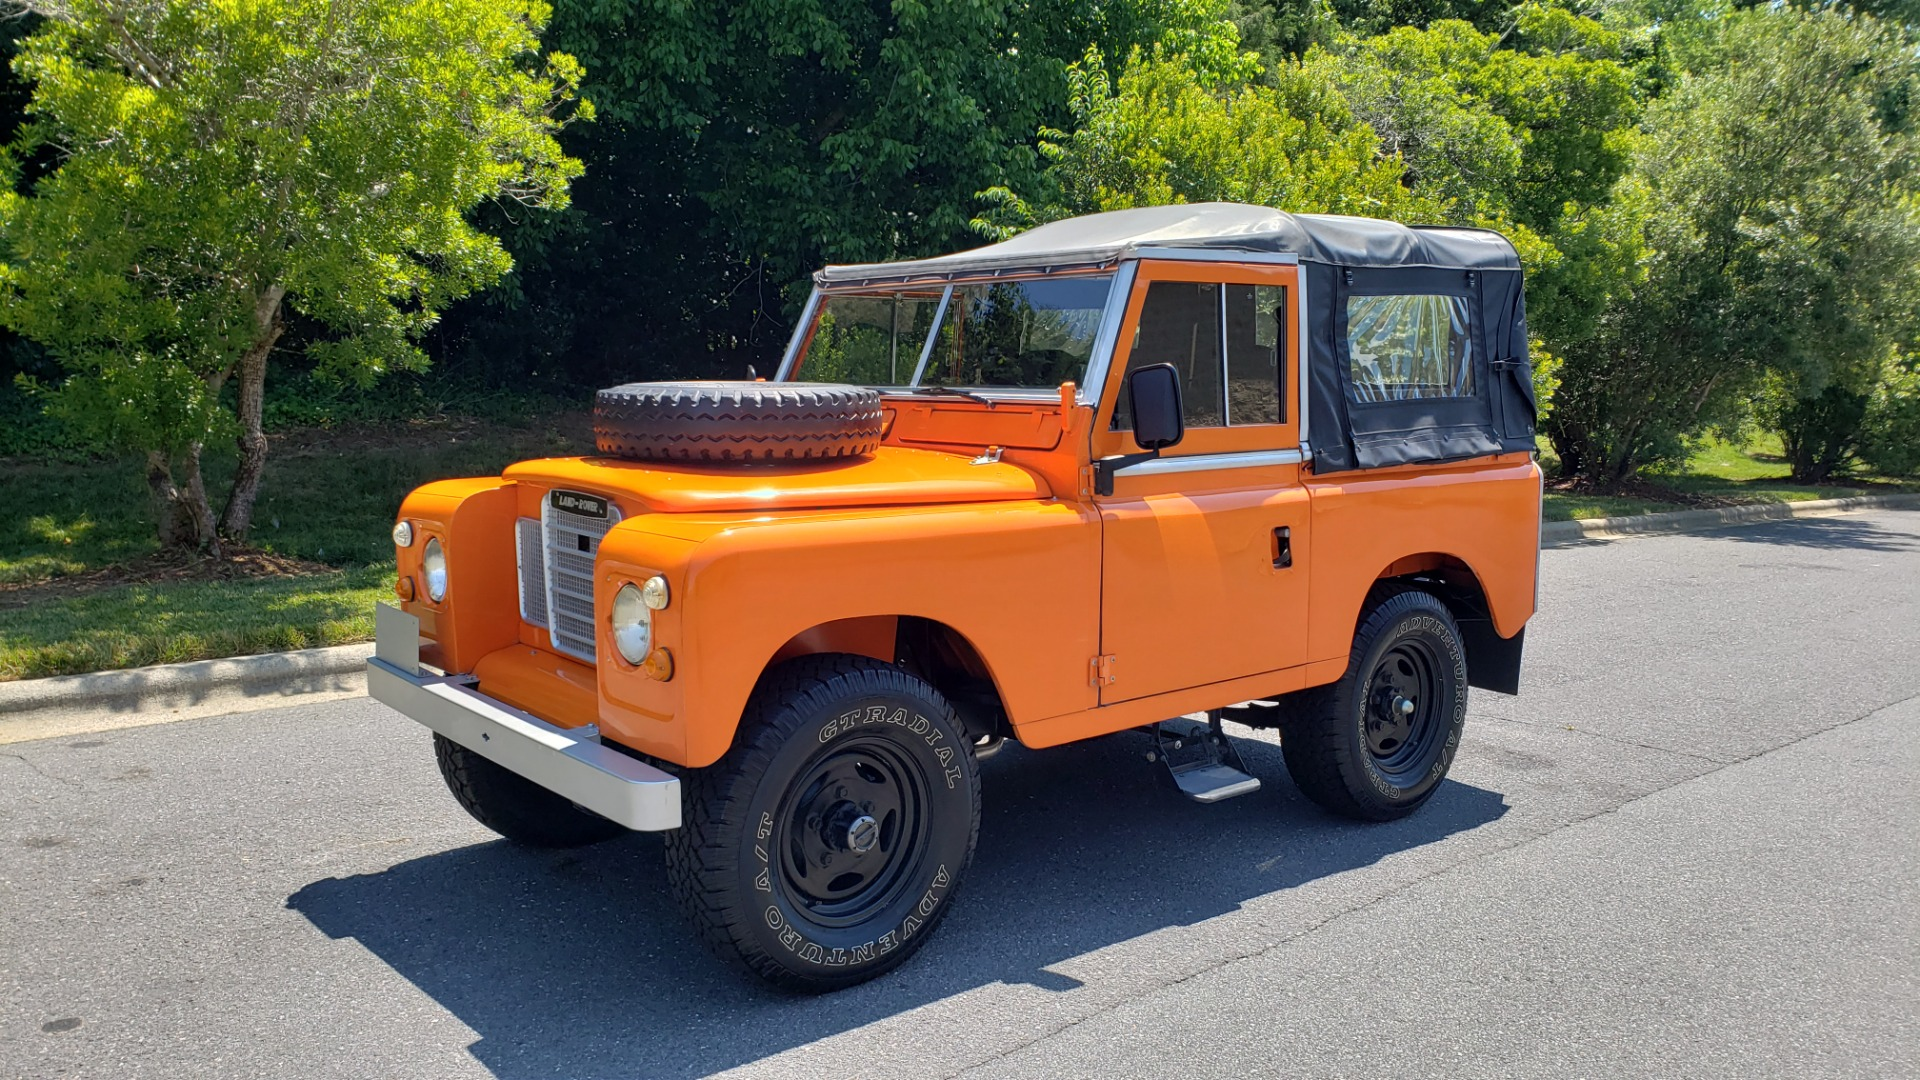 Used 1982 Land Rover SERIES 3 4X4 / SOFT-TOP / FULLY RESTORED / RUNS GREAT for sale $41,900 at Formula Imports in Charlotte NC 28227 1